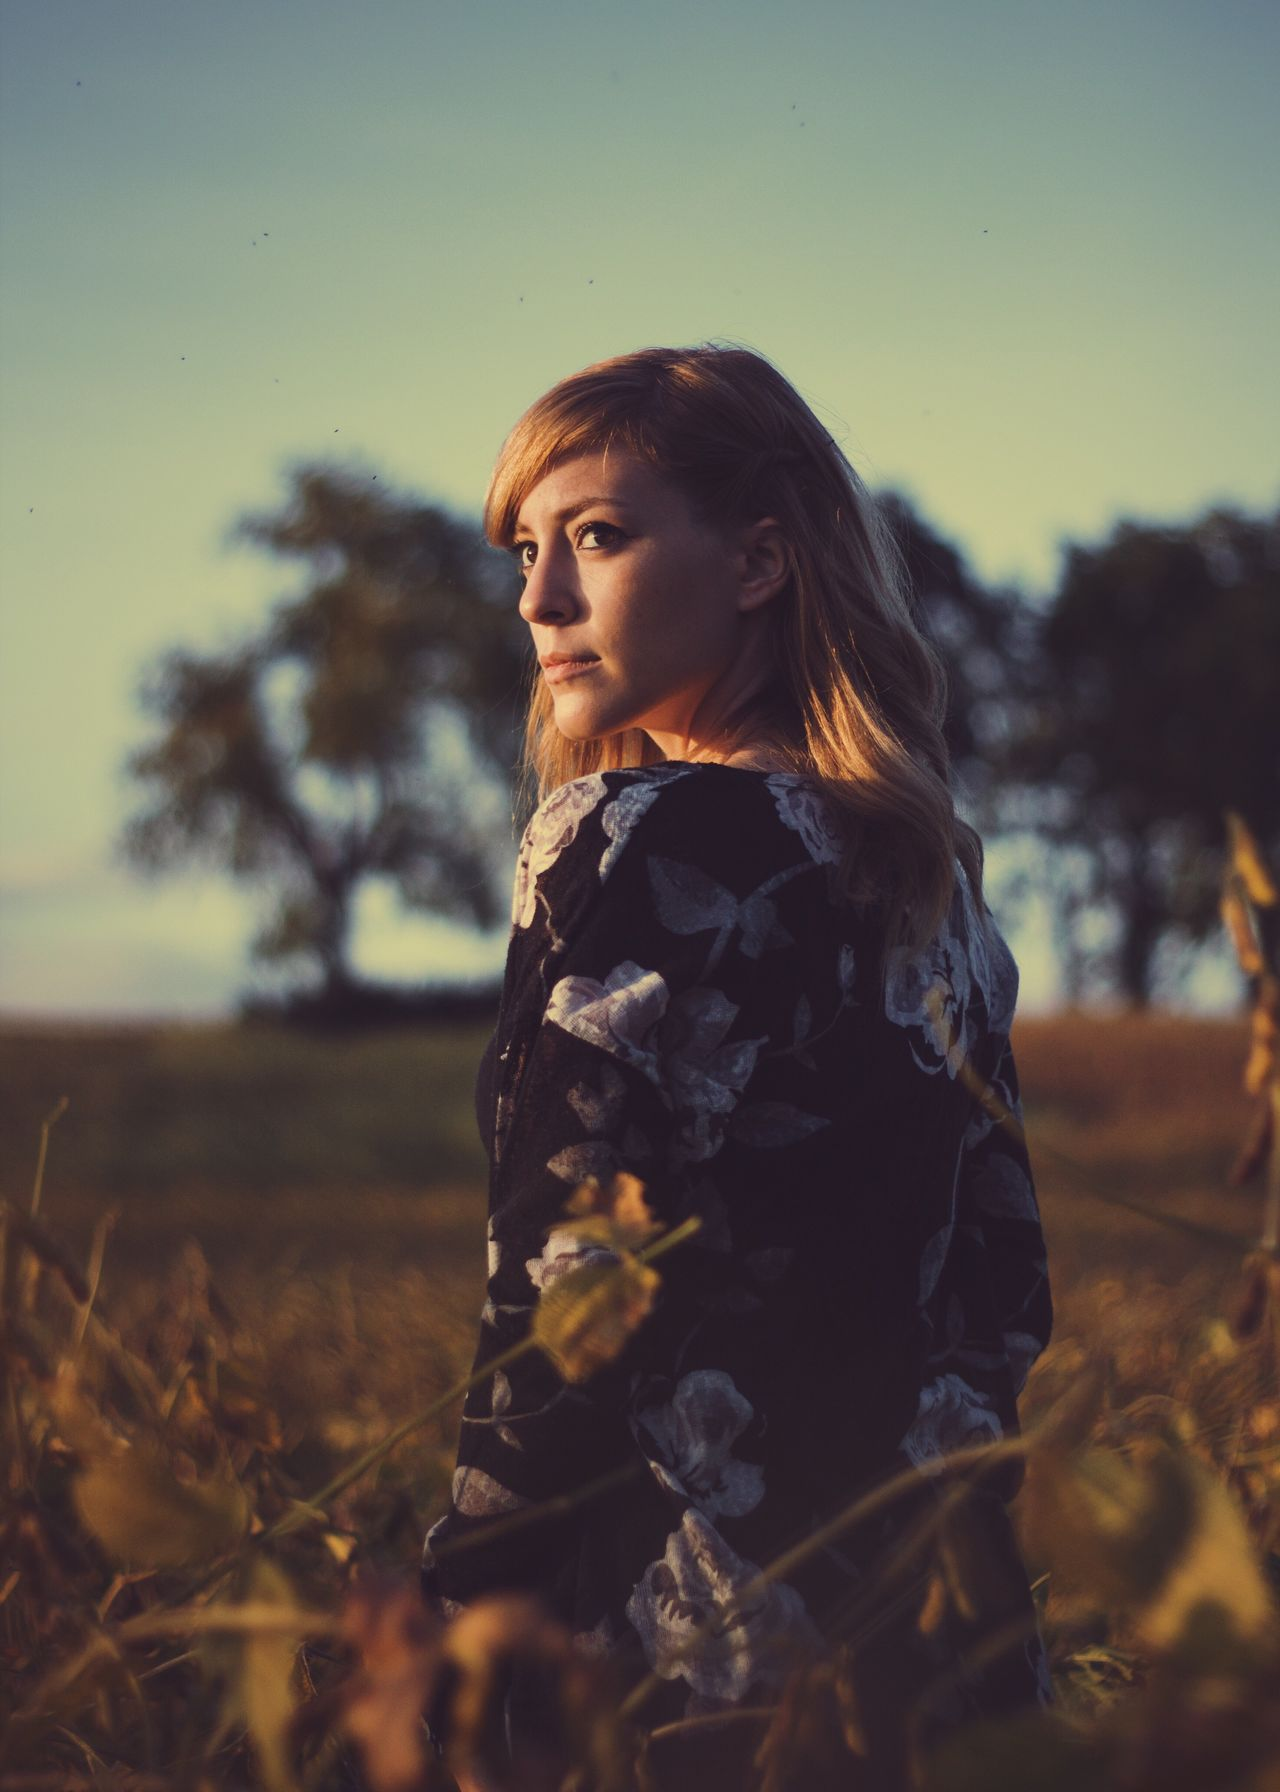 Wander Standing Young Adult Tree Casual Clothing Young Women Long Hair Front View Focus On Foreground Contemplation Human Face Person Hairstyle Messy